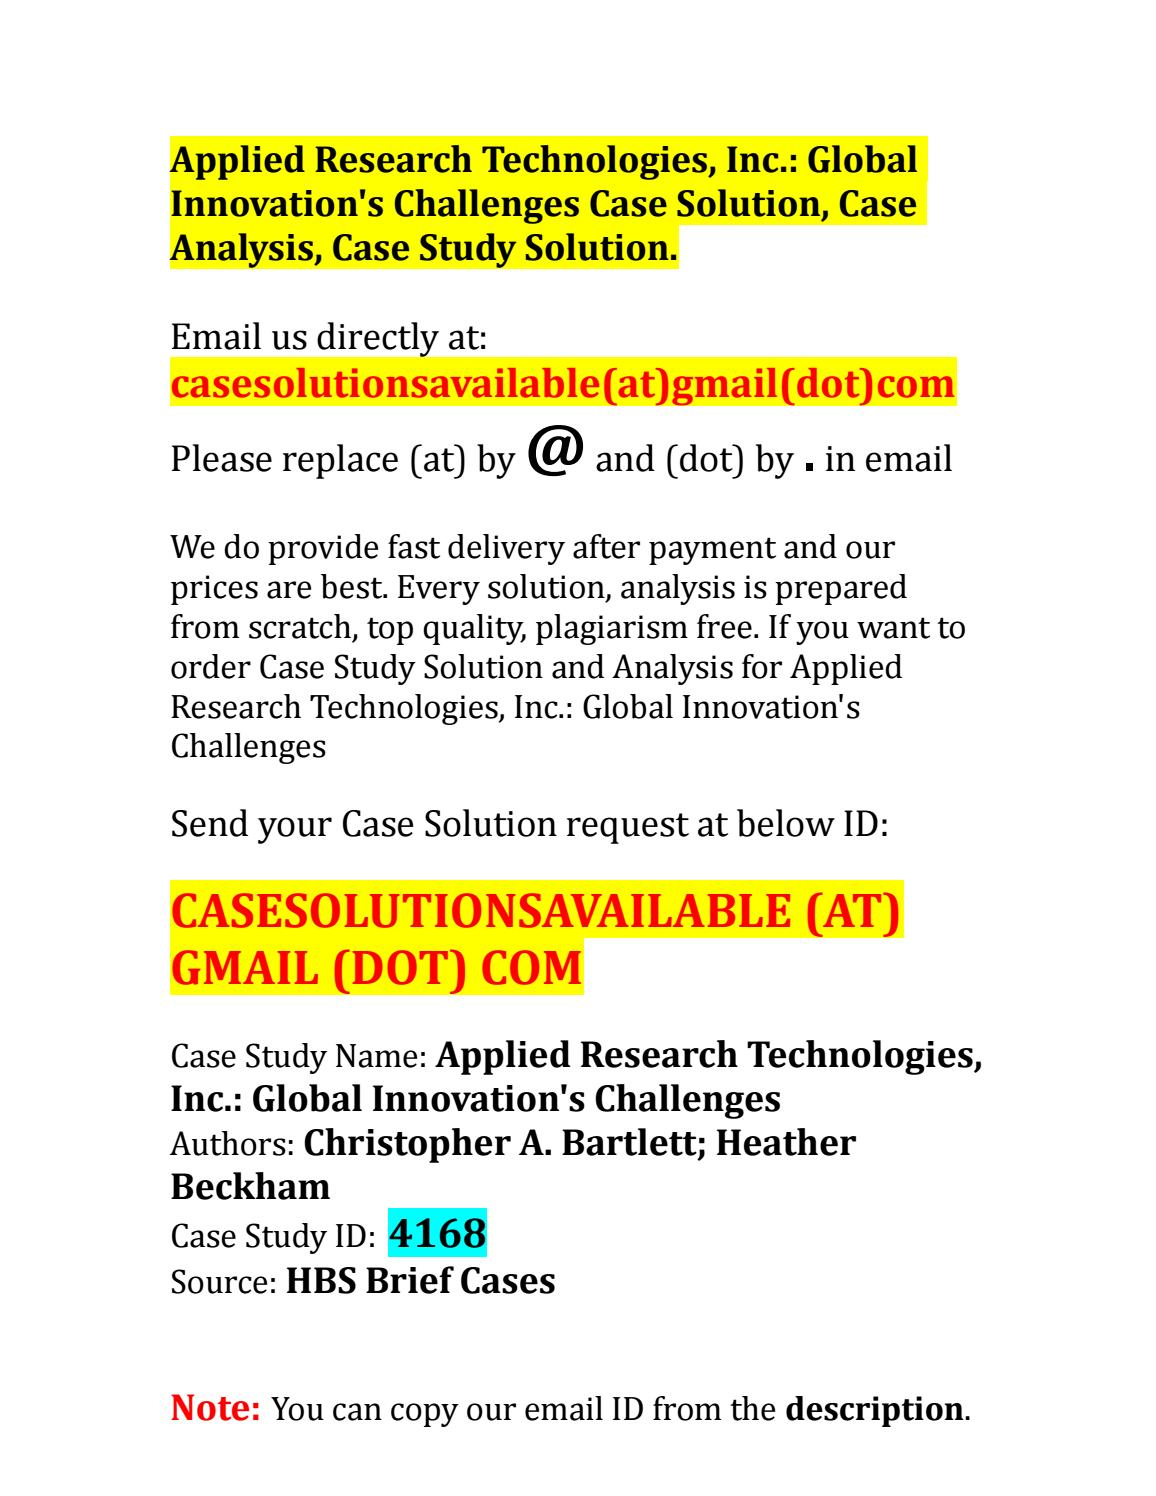 Applied Research Technologies, Inc.: Global Innovation's ...